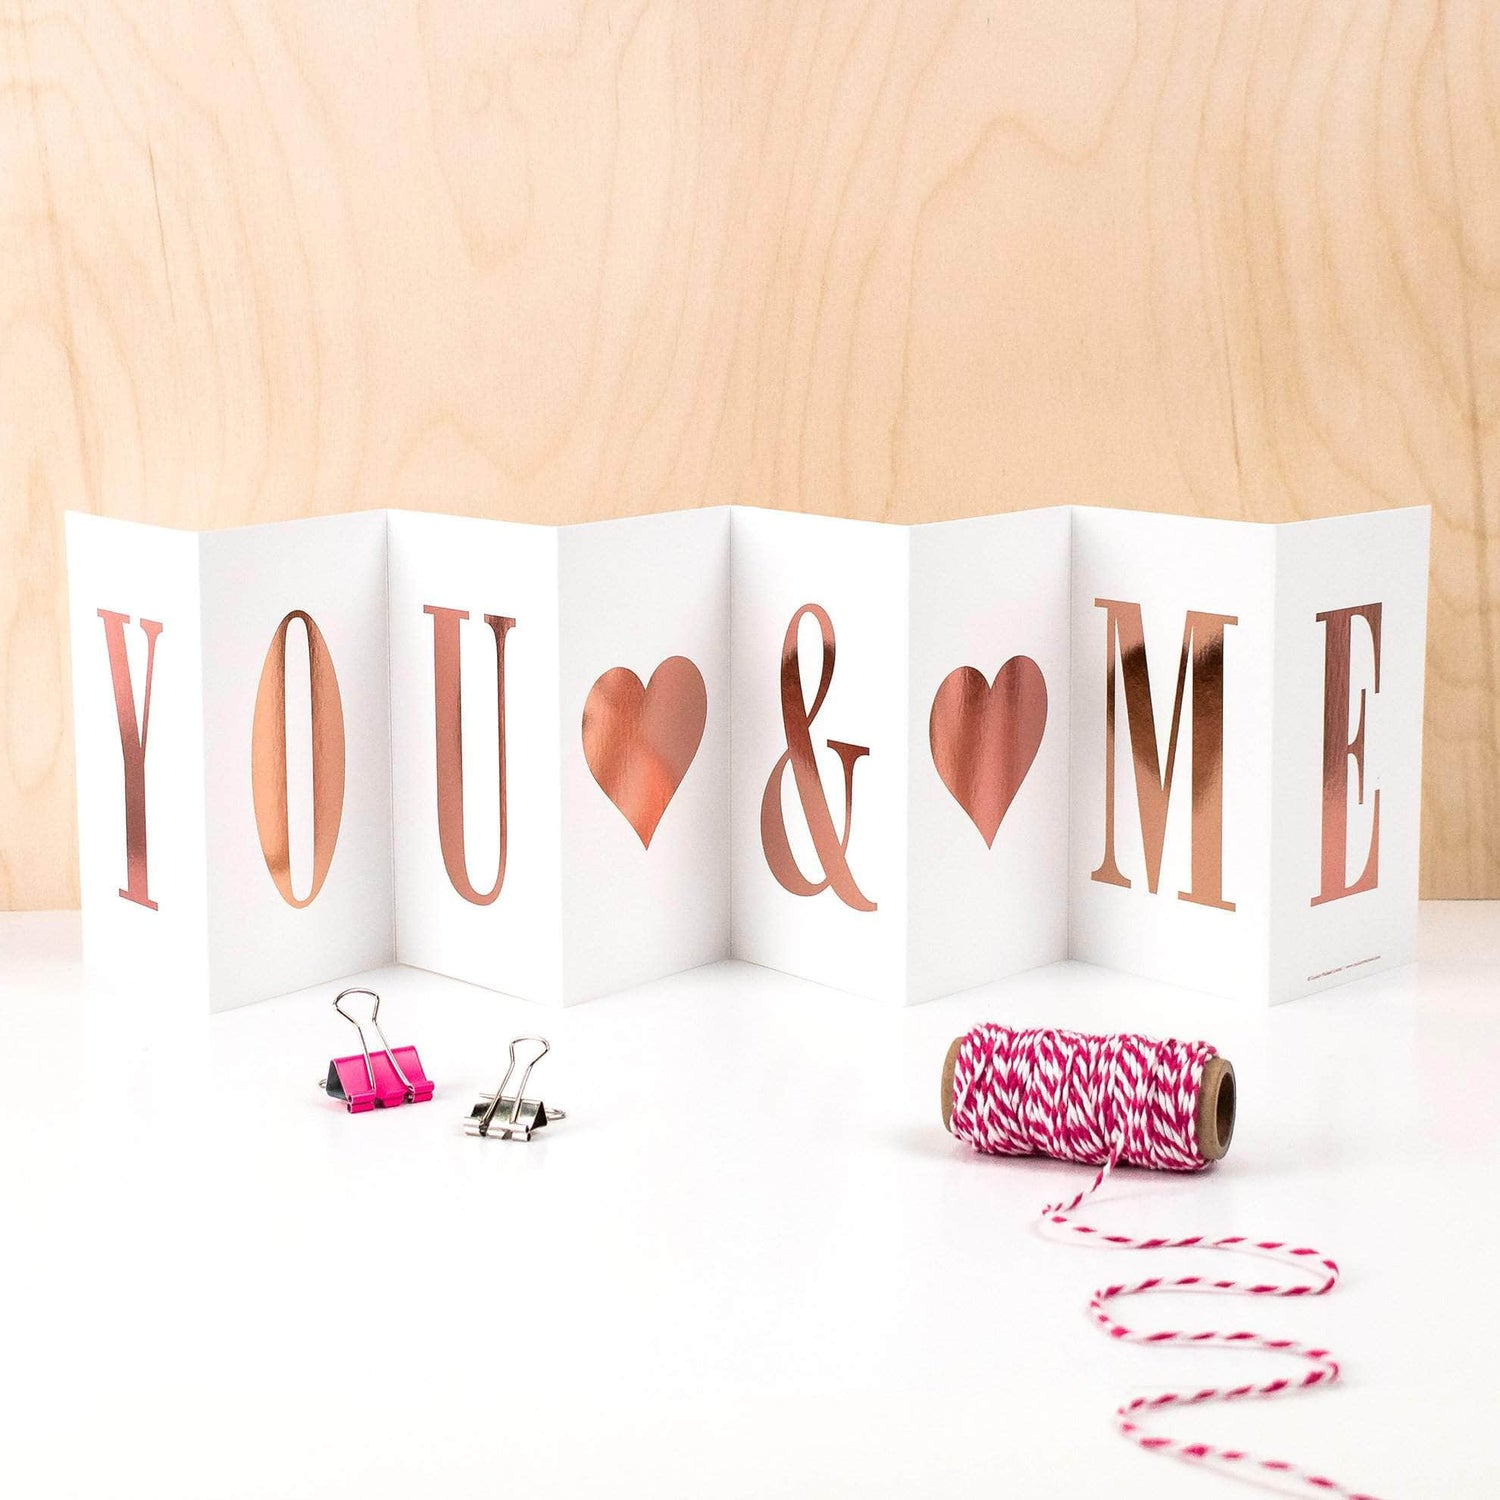 COULSON MACLEOD 'You & Me' Rose Gold Concertina Greetings Card with Personalised Gift Box